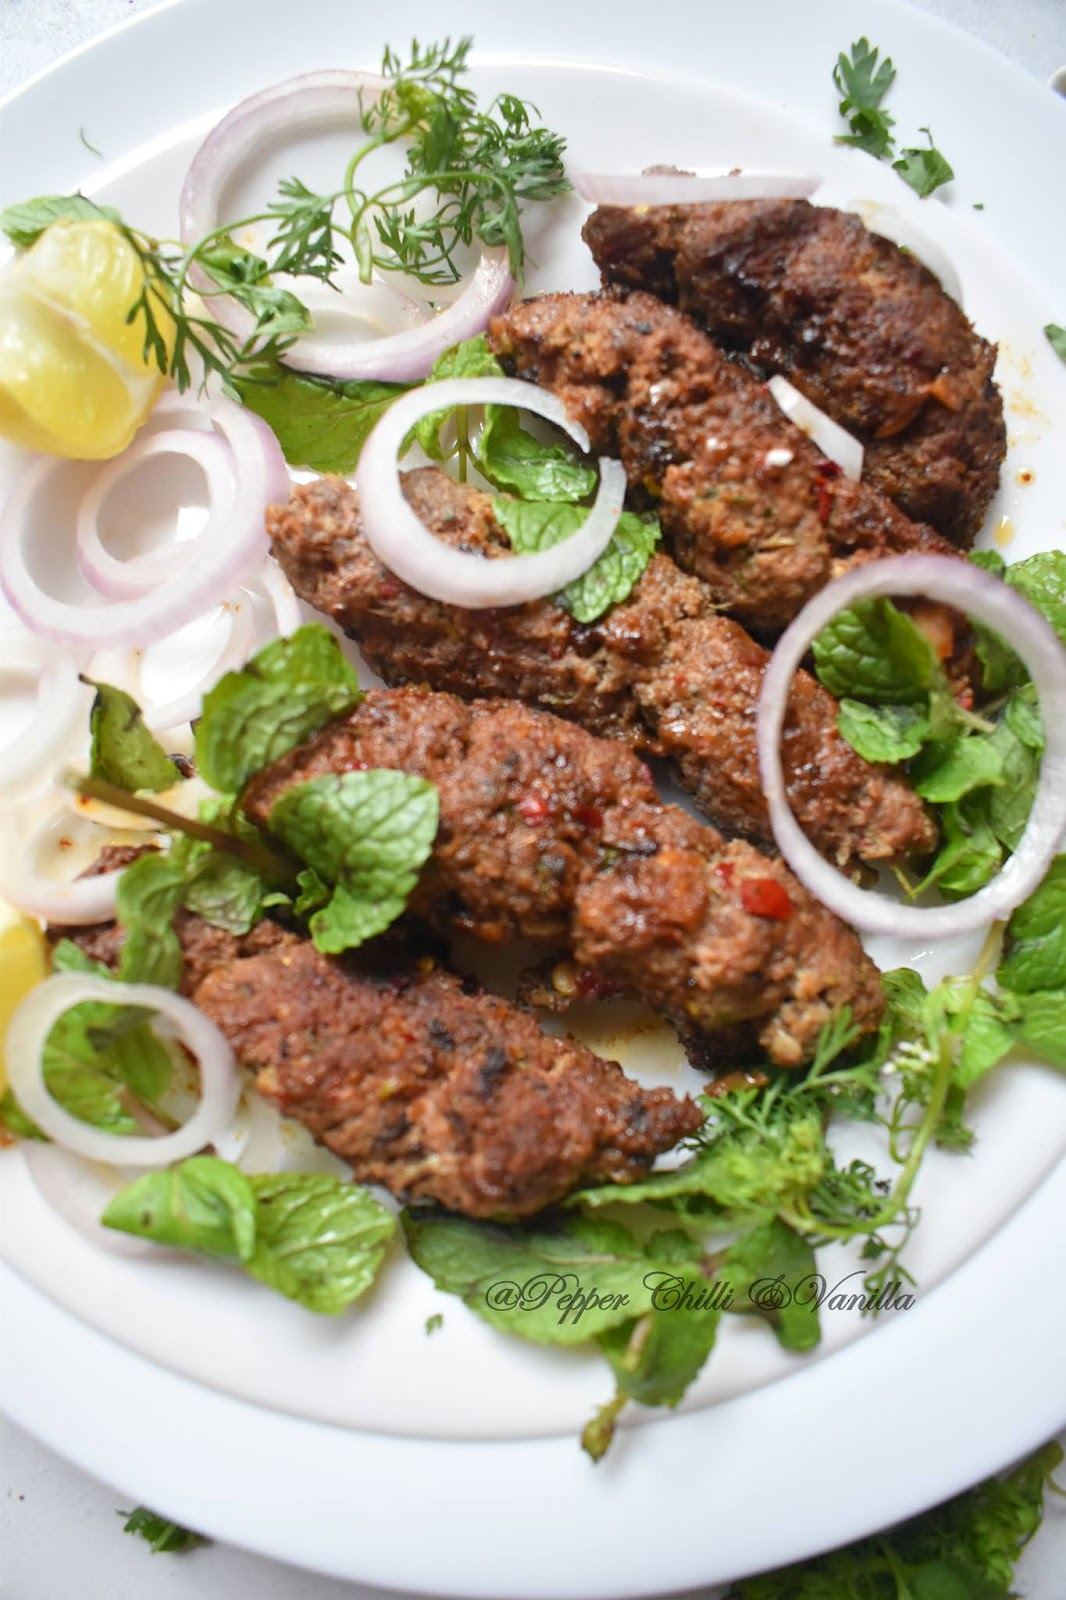 how to make seekh/sheekh kabab/kebab at home